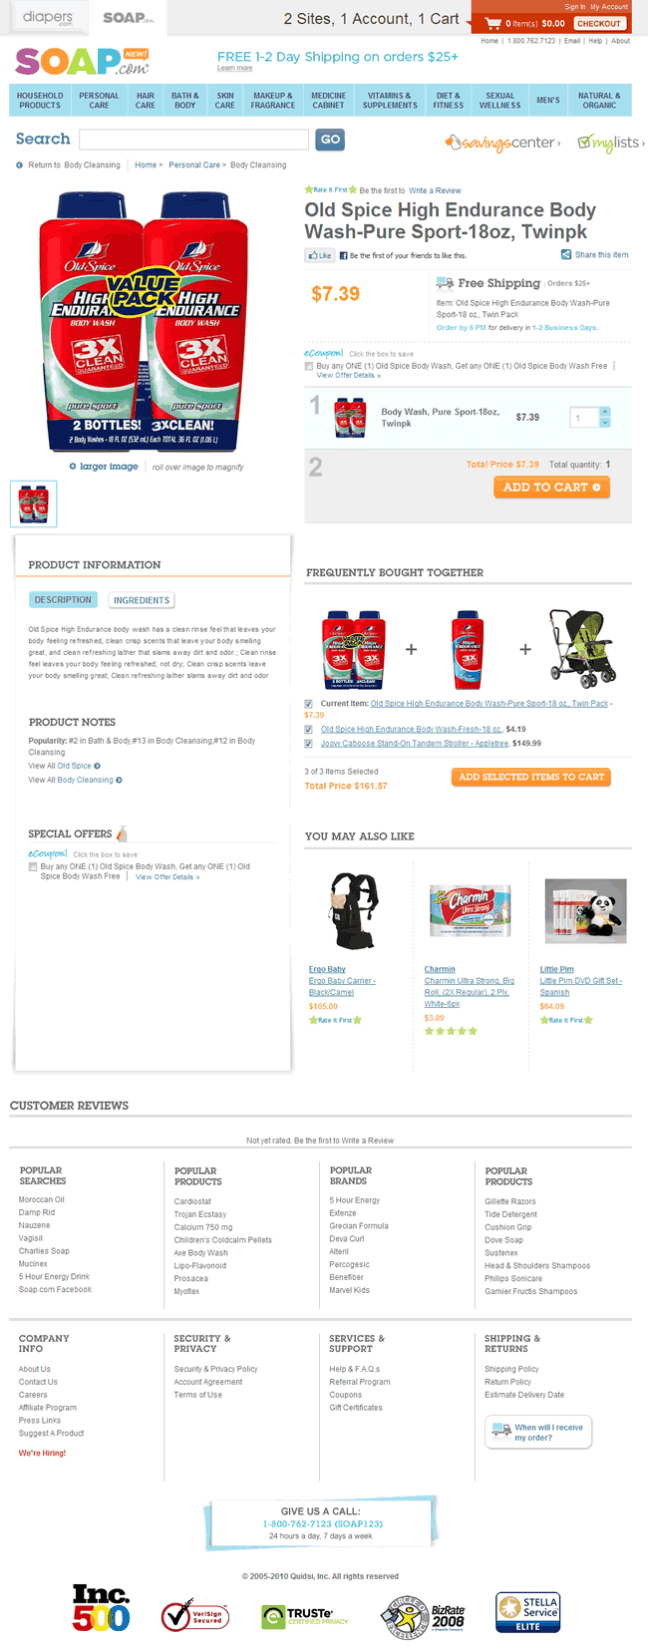 Soap.com ecommerce product page design example